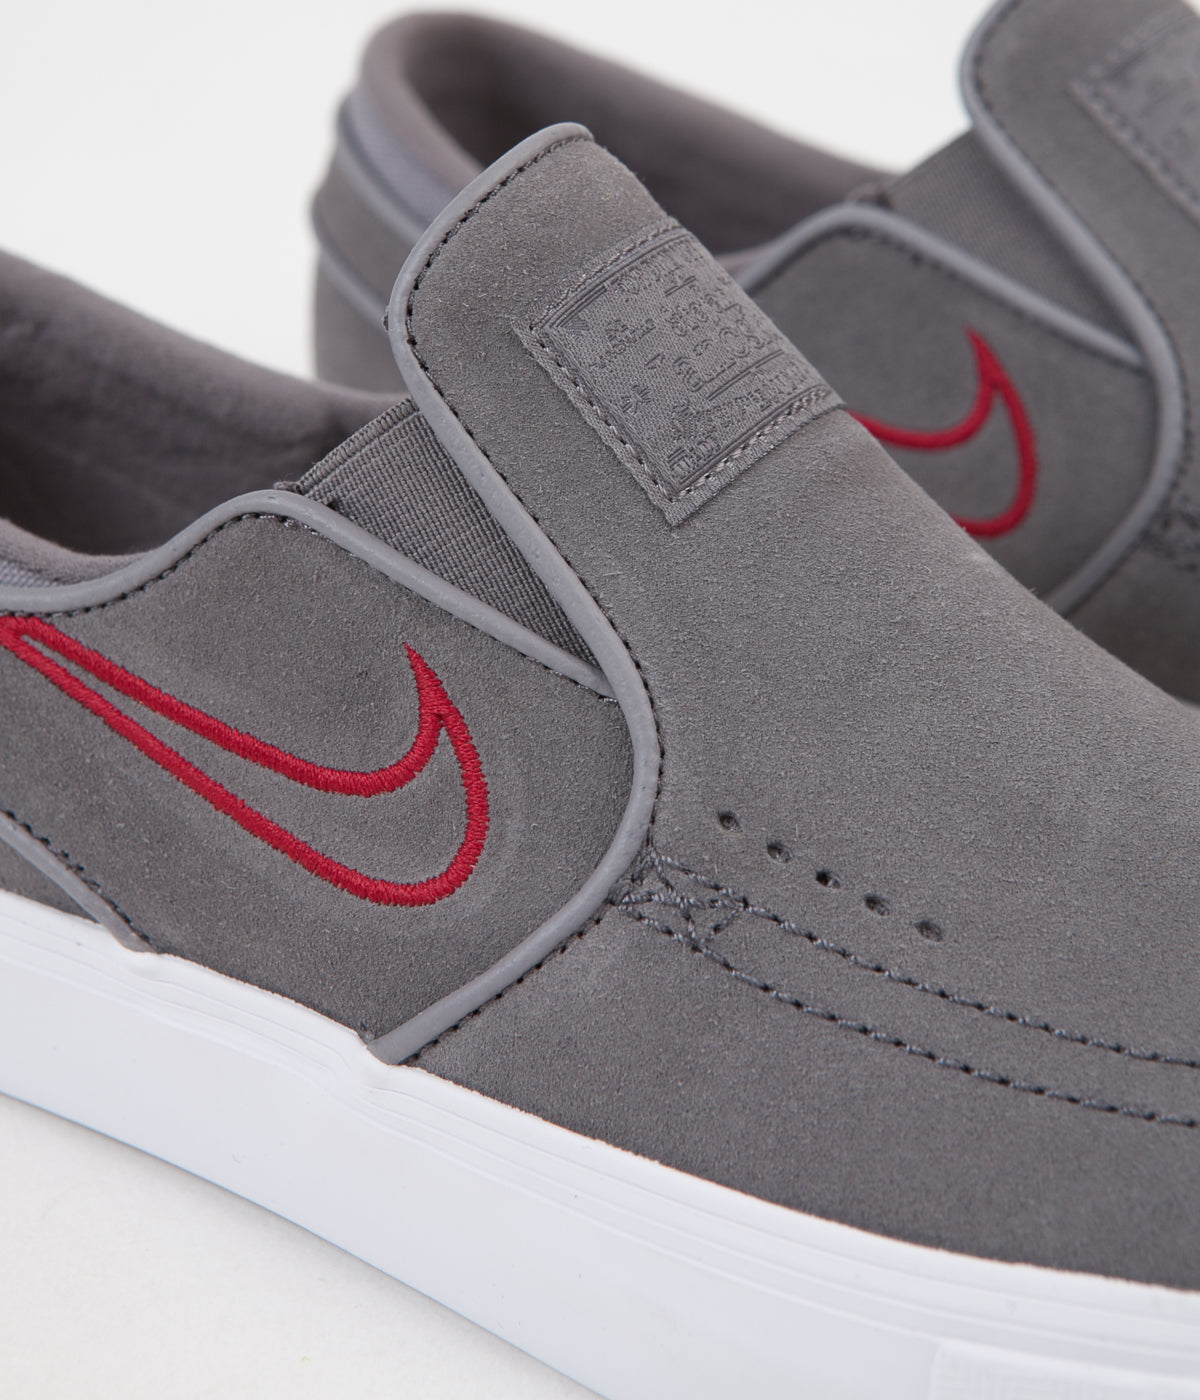 Nike SB Stefan Janoski Slip On Shoes - Gunsmoke / Gunsmoke - Red Crush